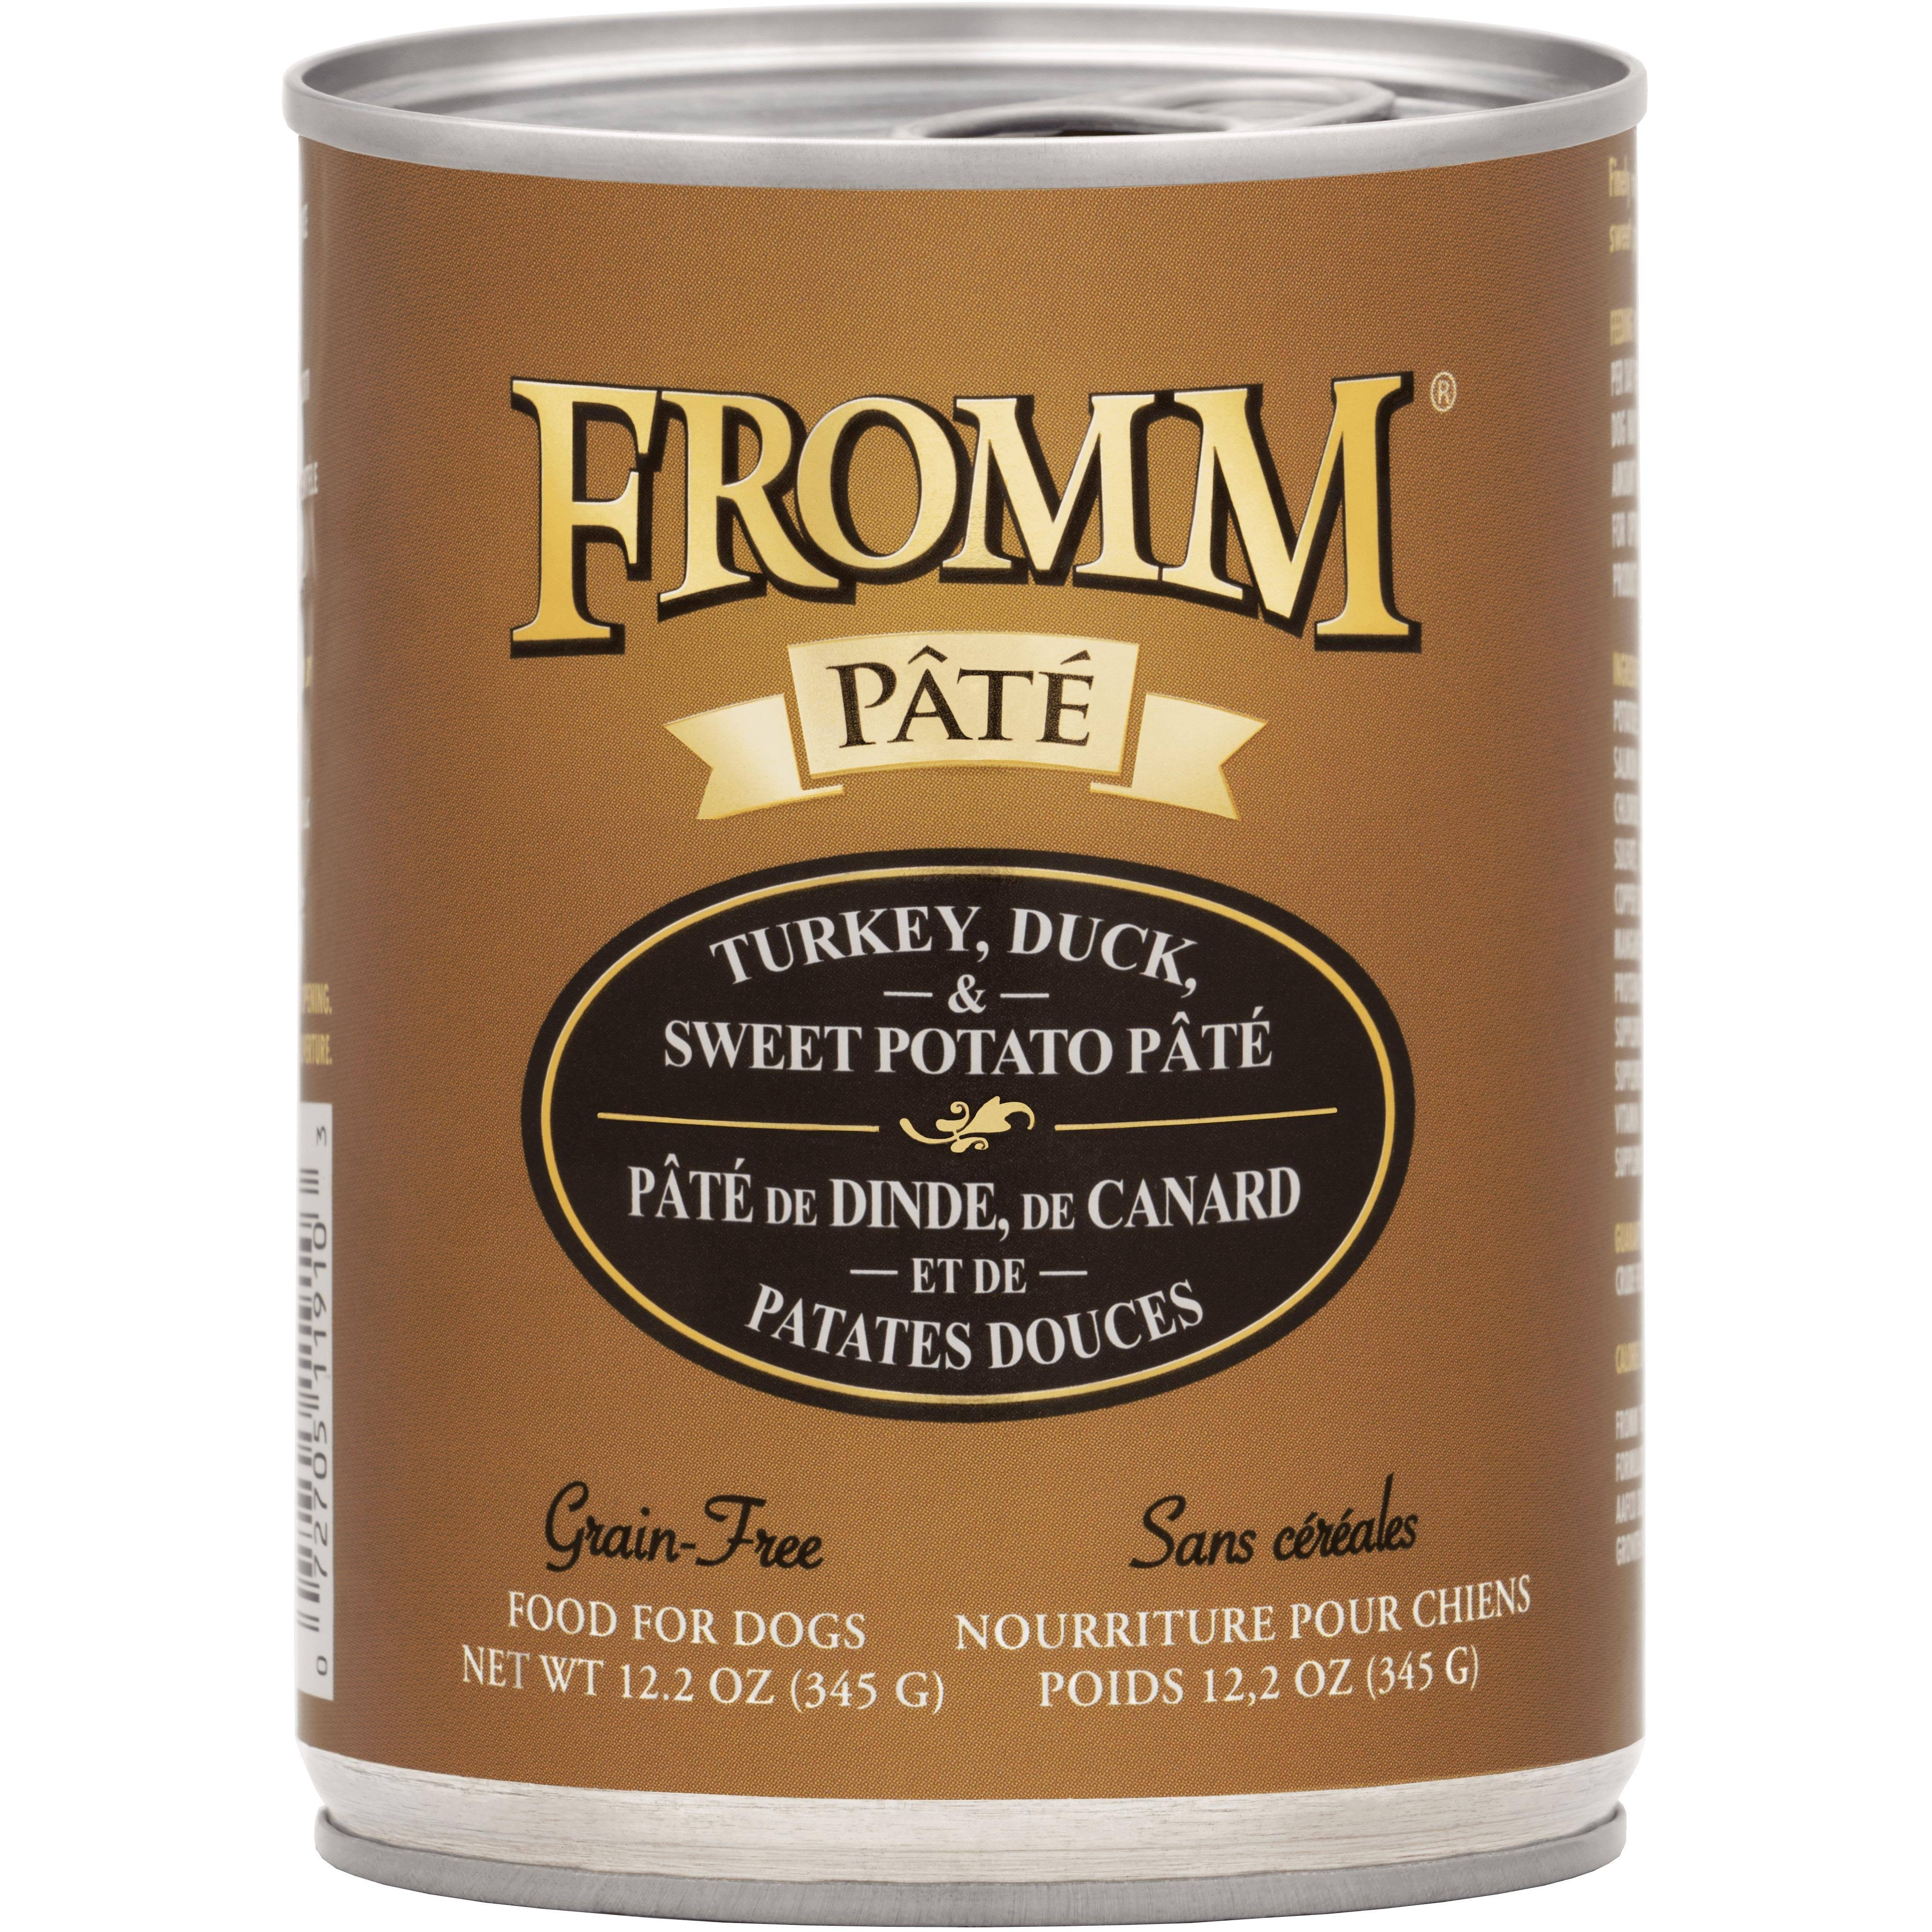 Fromm Grain Free Turkey, Duck & Sweet Potato Pate Dog Food